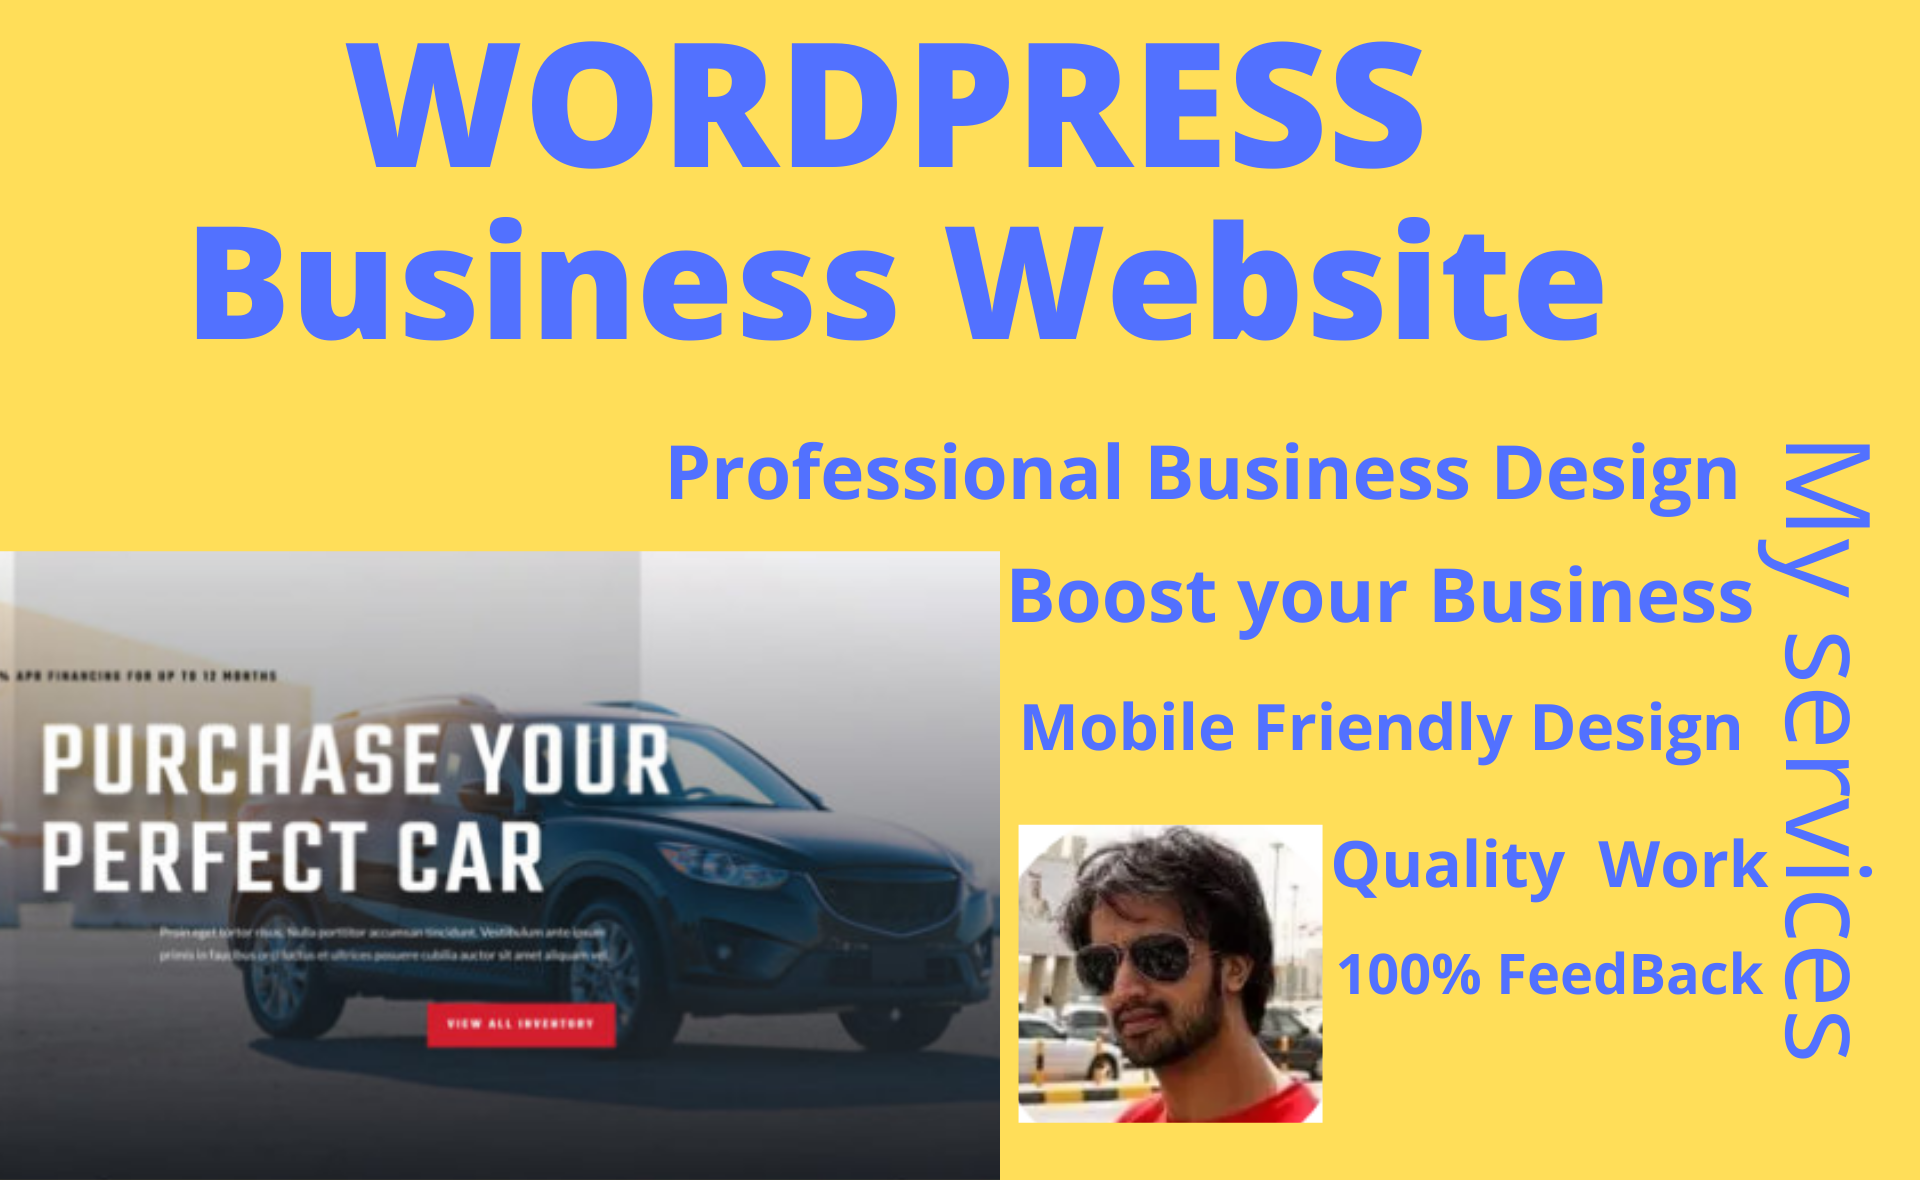 I will create a Professional Business Website in Wordpress with responsive buinesses design